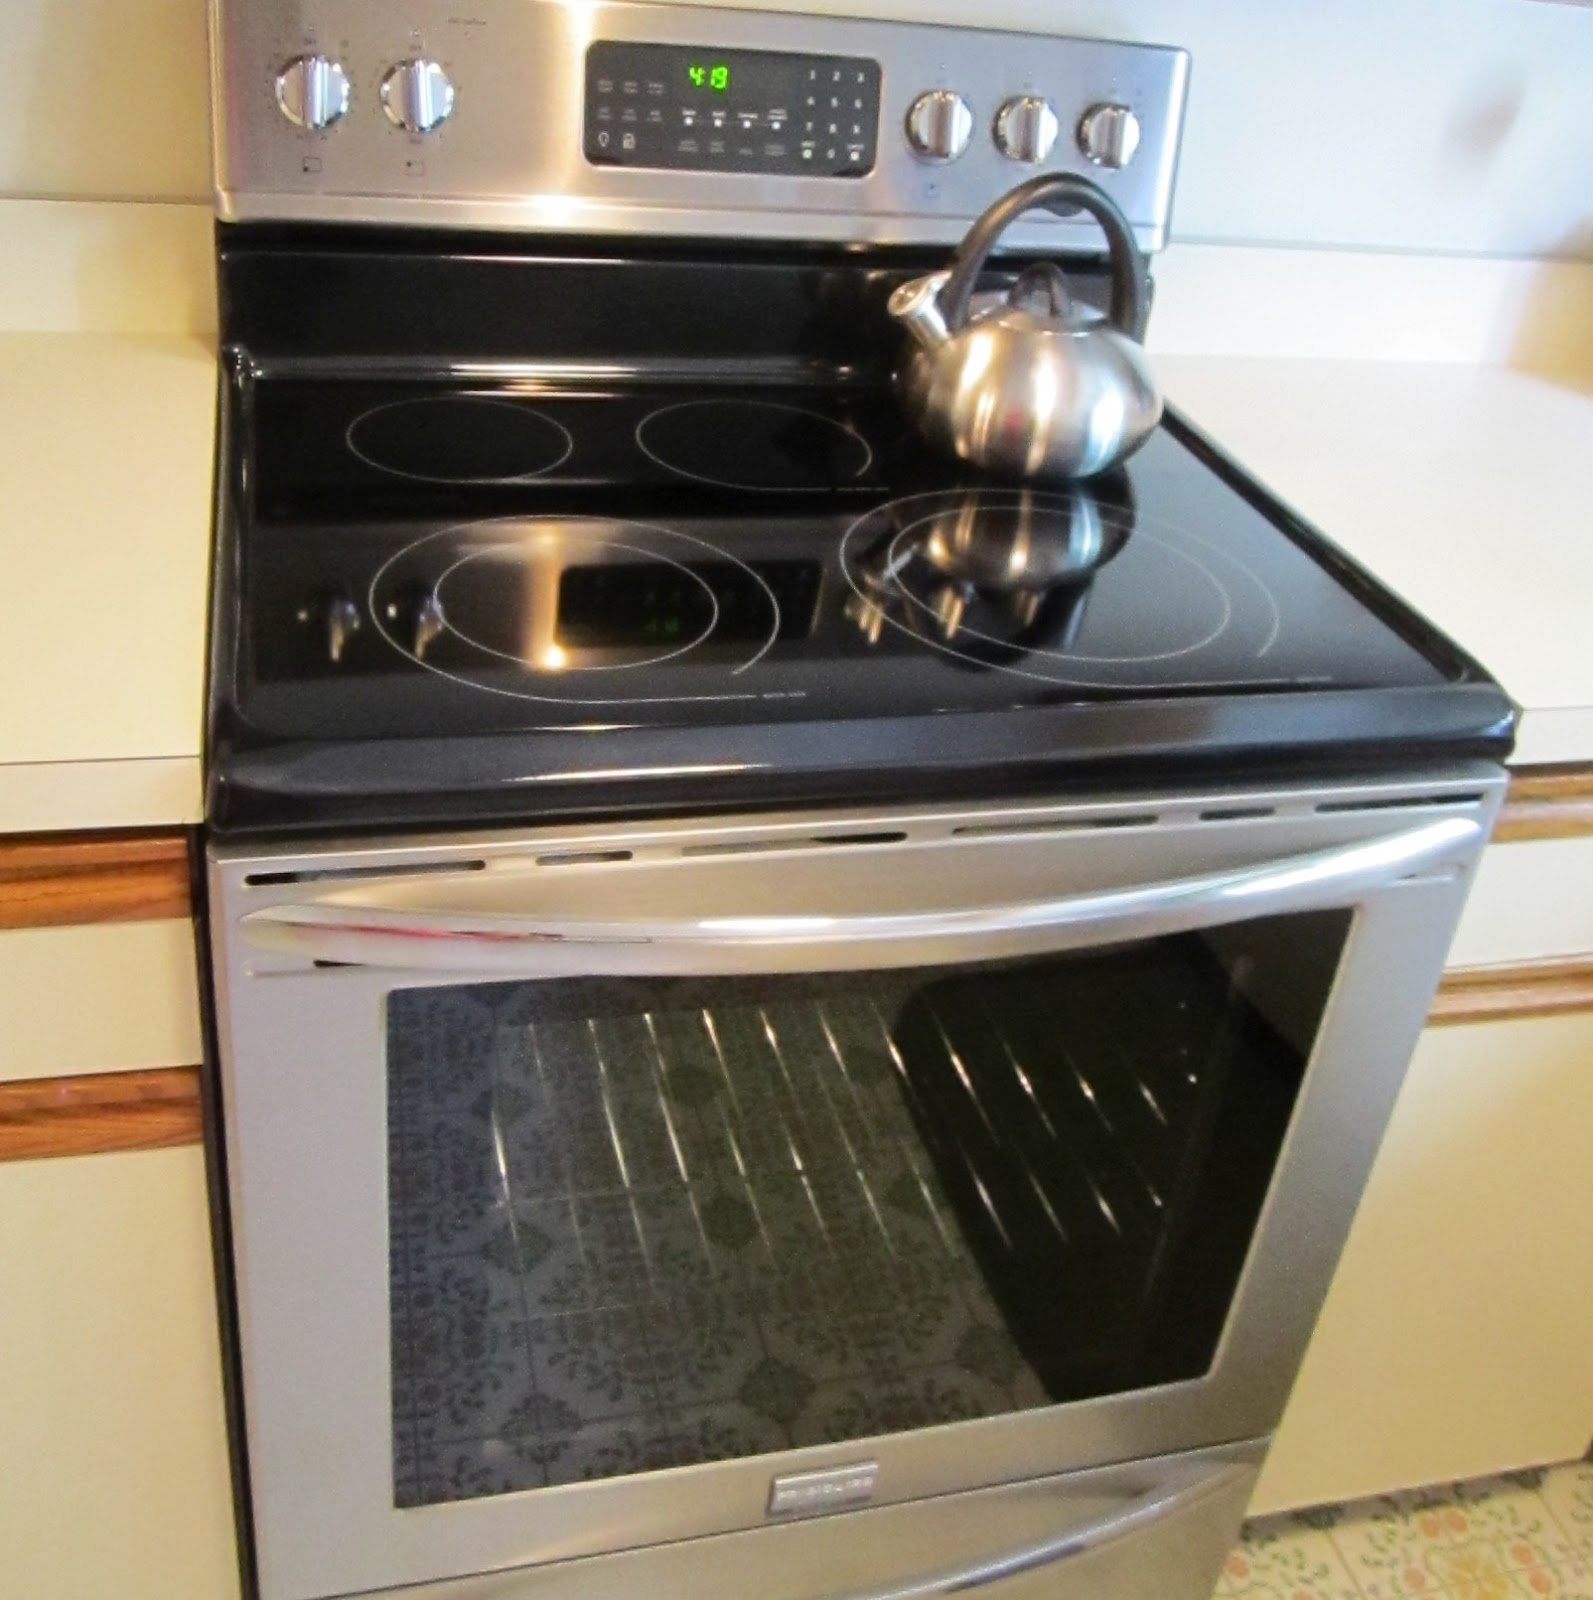 exciting cook stoves at lowes. It s a convection oven  which cooks food about 30 faster and at 25 degrees cooler has fan on the inside that circulates hot air We Have New Oven Food Marriage